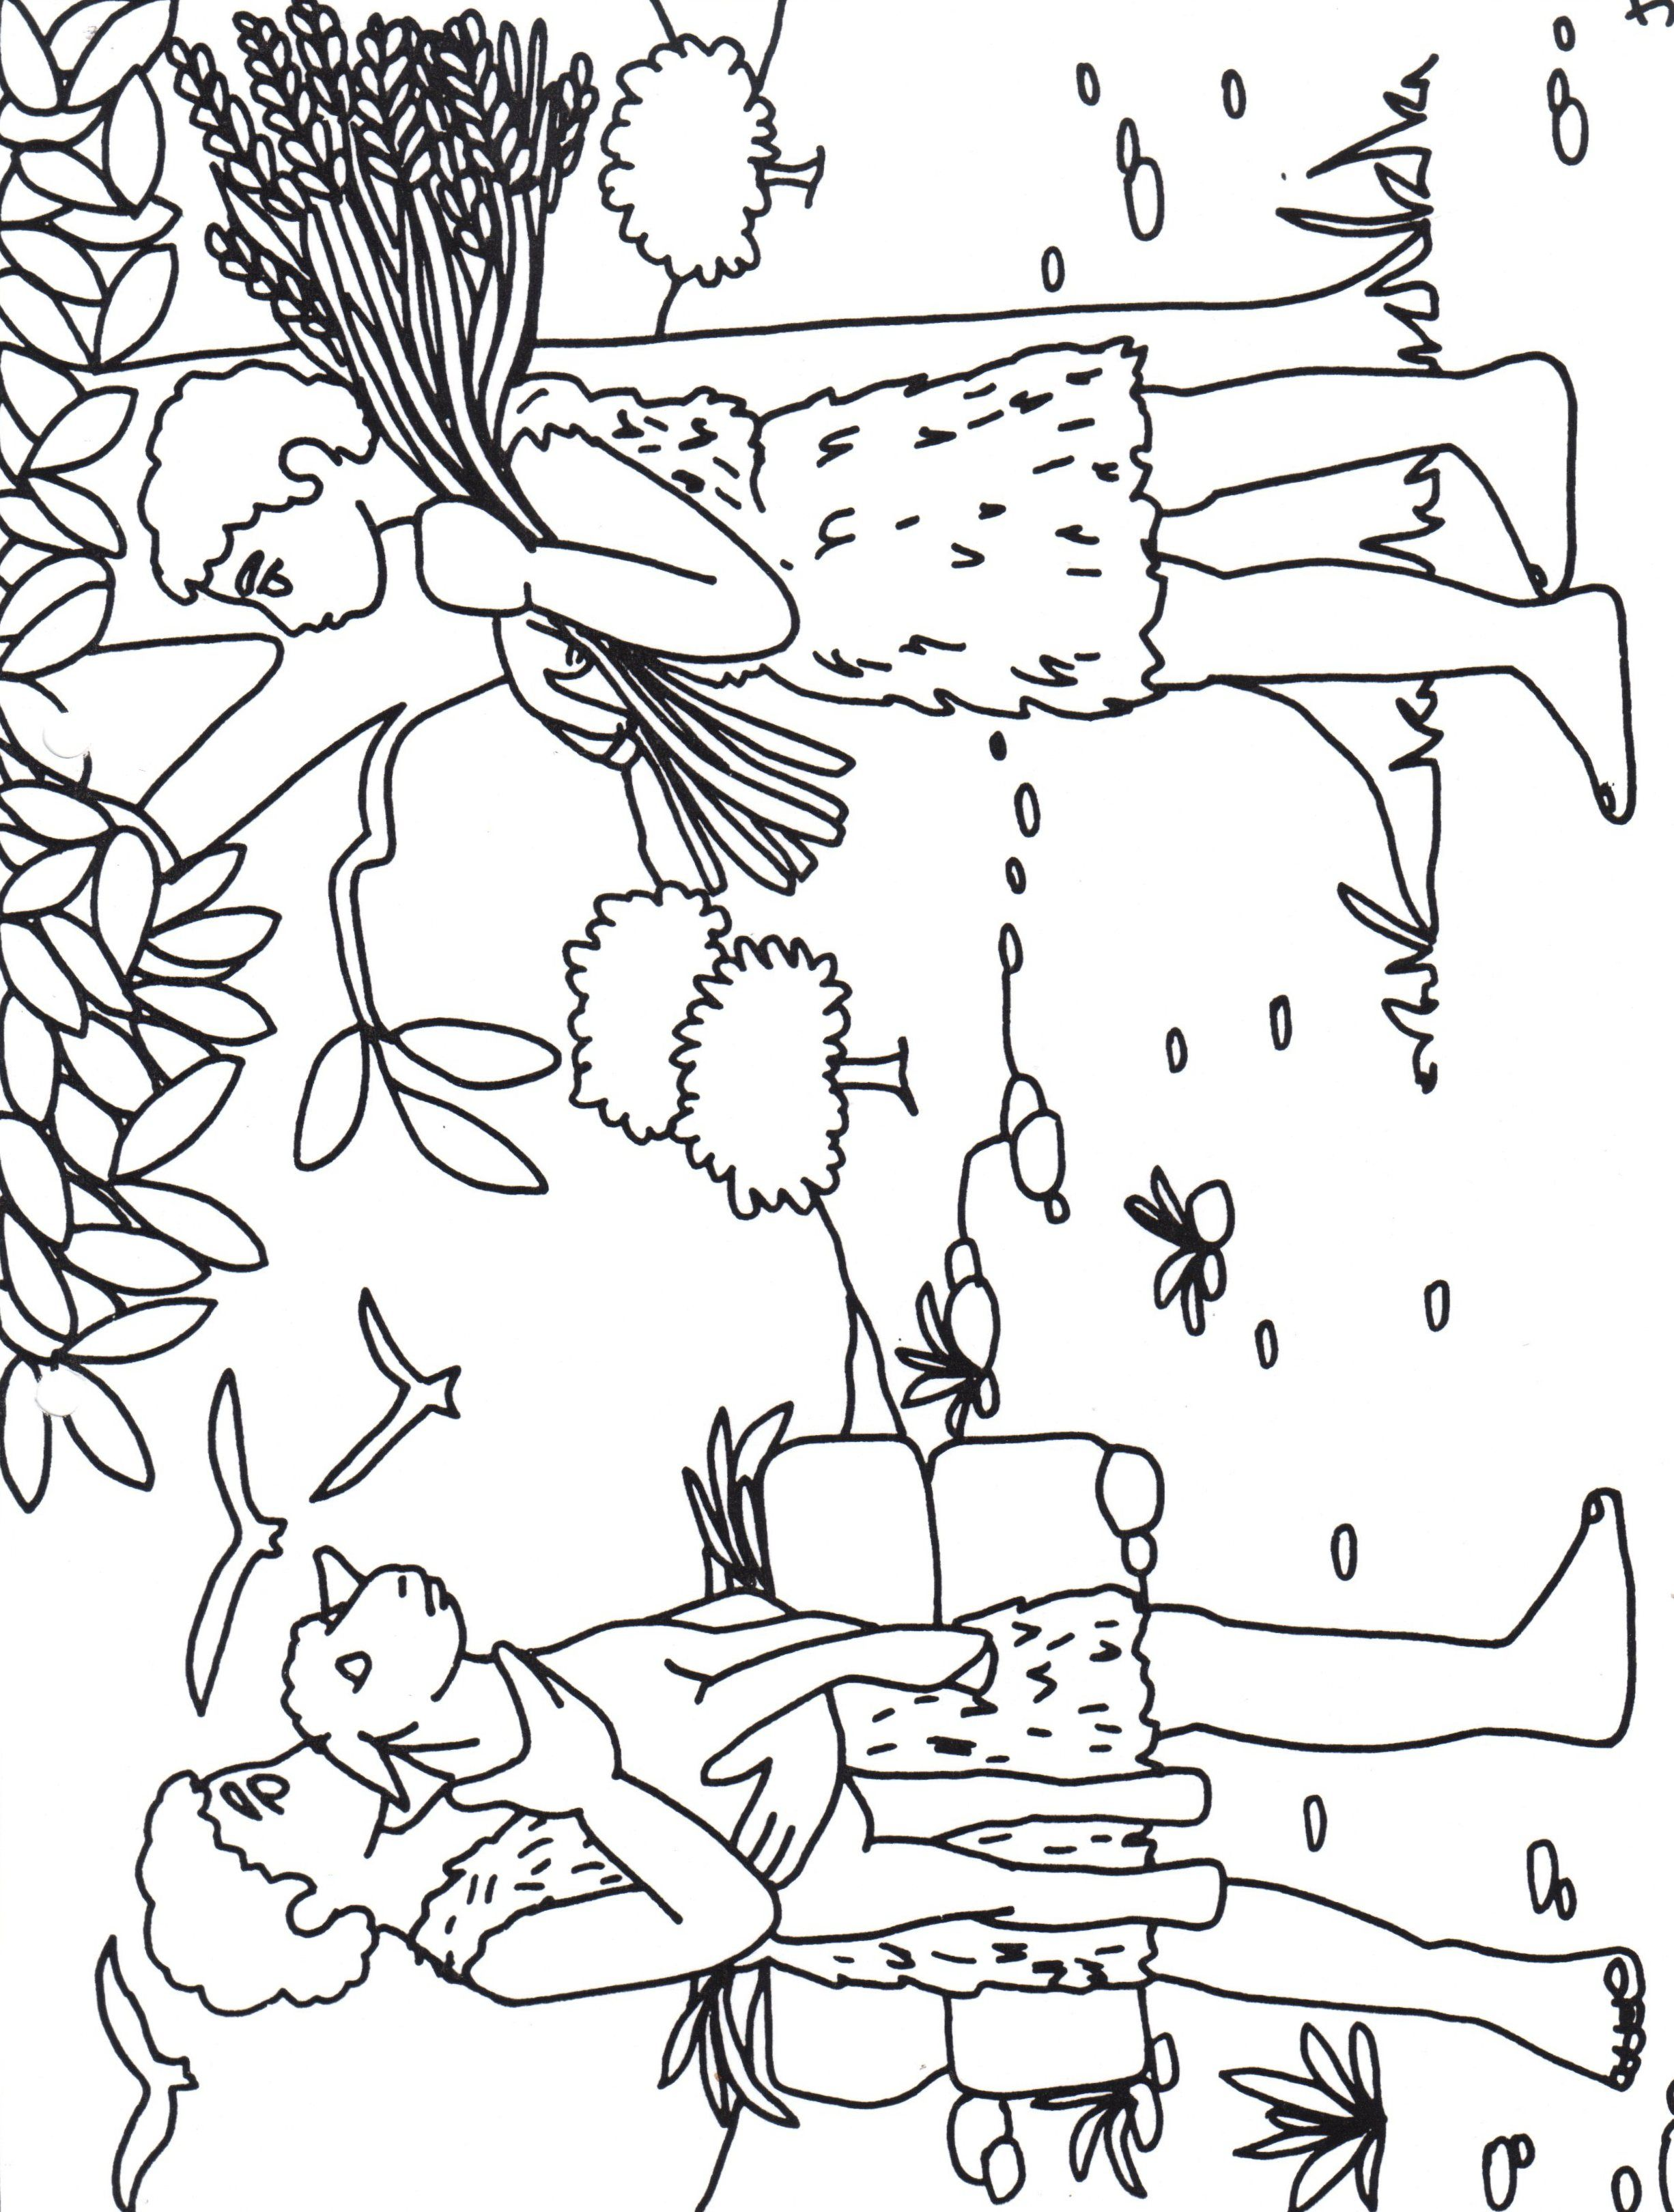 Coloring pages for jonathan and david - Ca N Y Abel Para Colorear